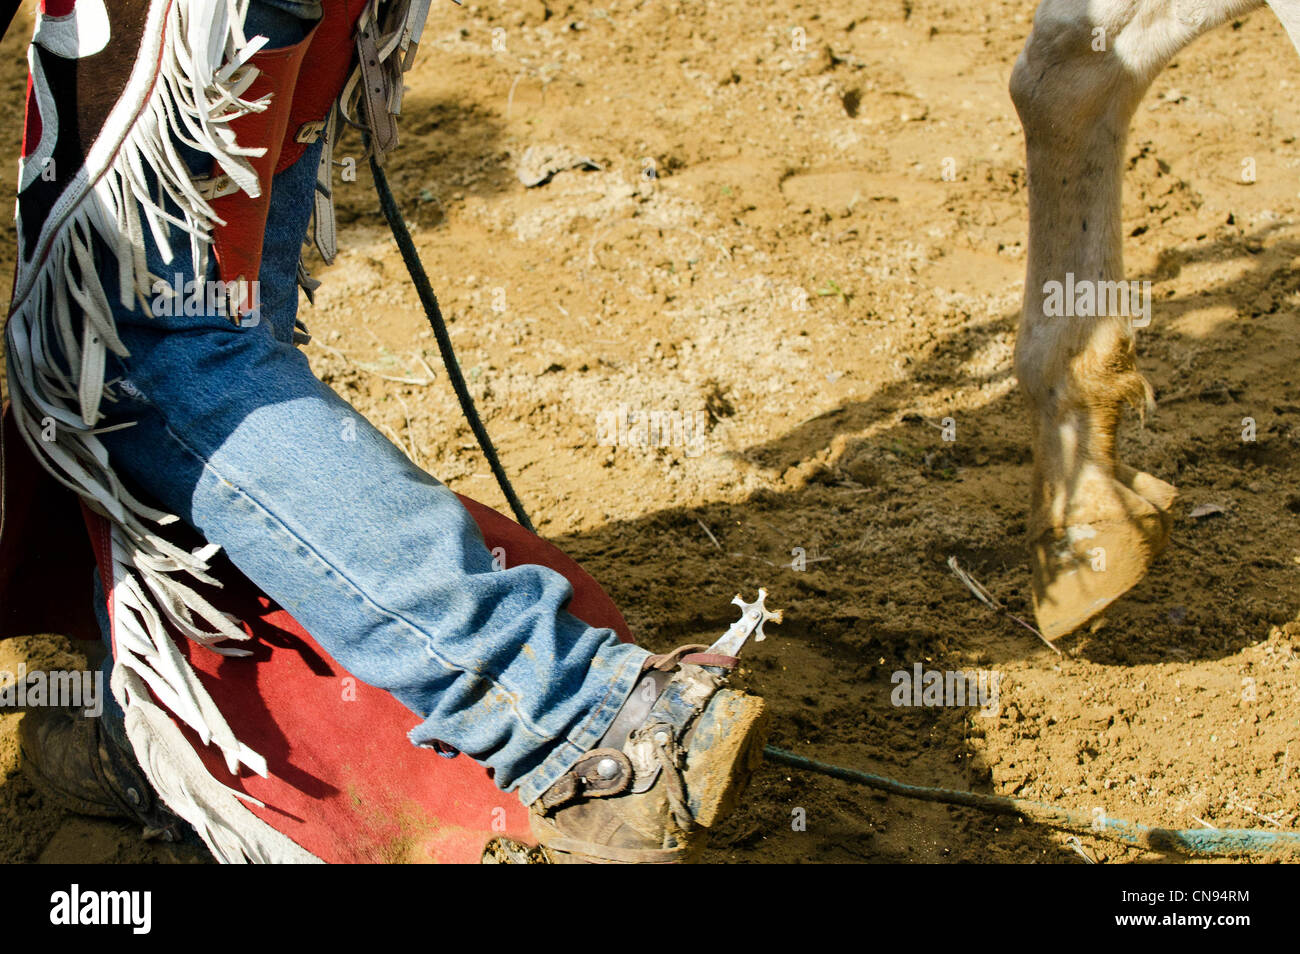 Livestock Show And Rodeo Stock Photos Amp Livestock Show And Rodeo Stock Images Alamy